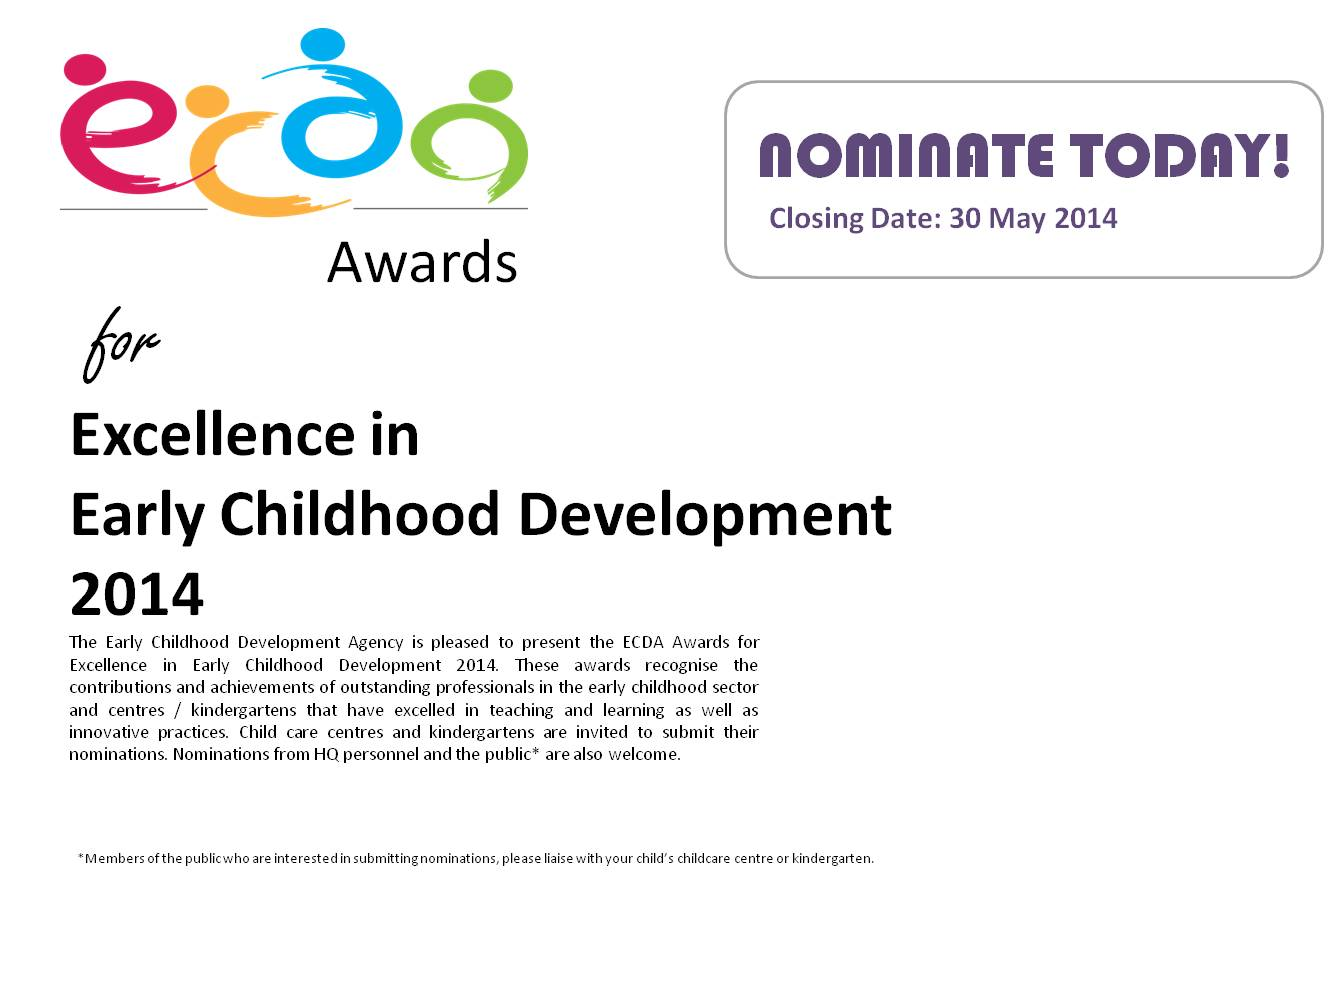 ECDA Awards for Excellence in Early Childhood Development 2014